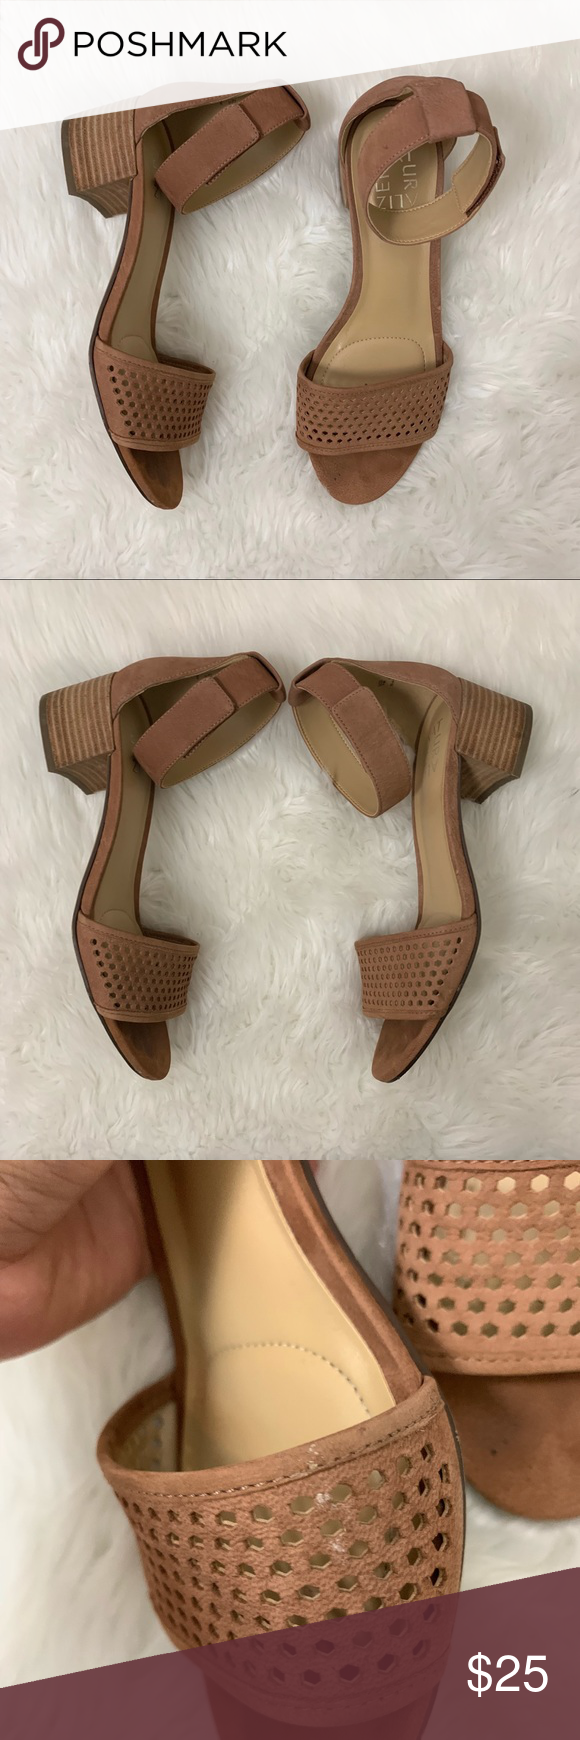 """ab606083a93c Naturalizer Faith Leather Ankle Strap Sandal Some light marks  scuff as  shown However still these are in such great condition Color is """"saddle tan""""  ..."""